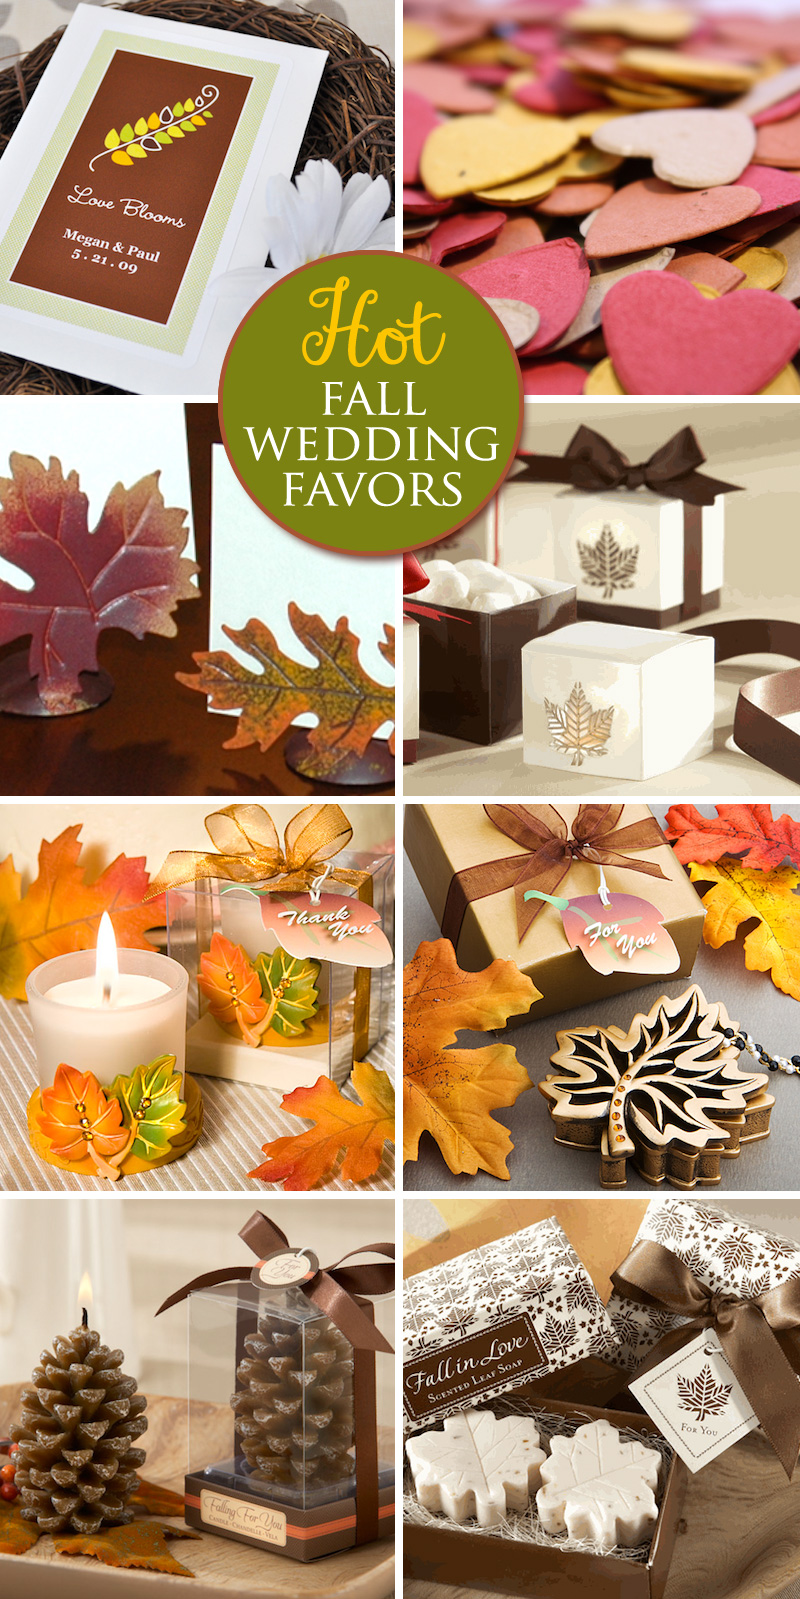 What's Hot in #Fall #Wedding #Favors for 2013?